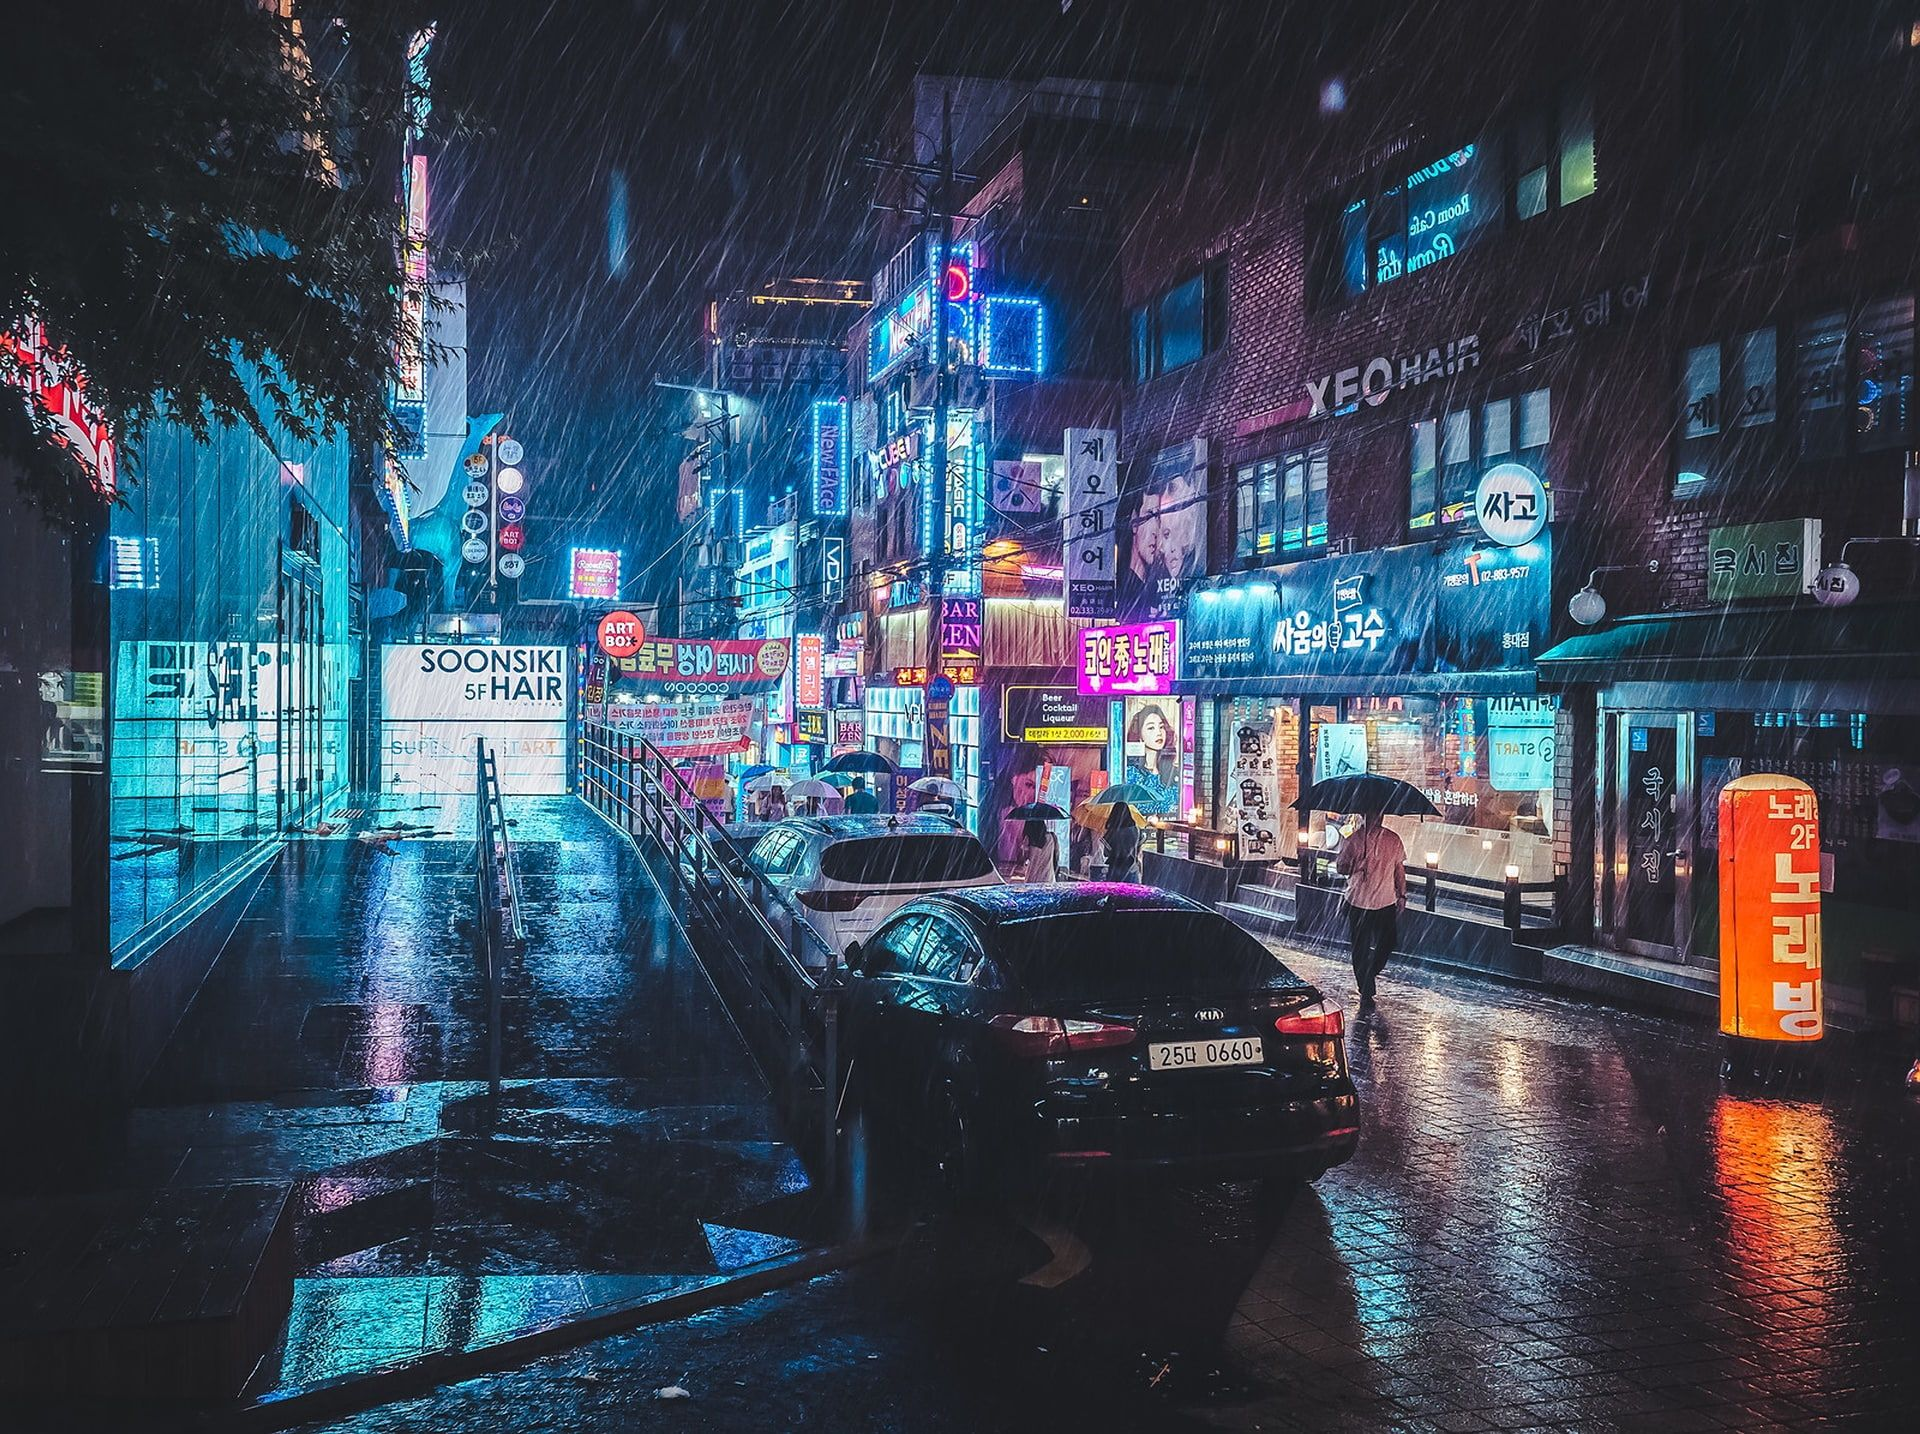 South Korea Rain Neon Photography Car Cityscape City Lights City Road Urban Umbrella 1080p Wallpaper Hdwallpape In 2020 City Aesthetic Night City Cityscape